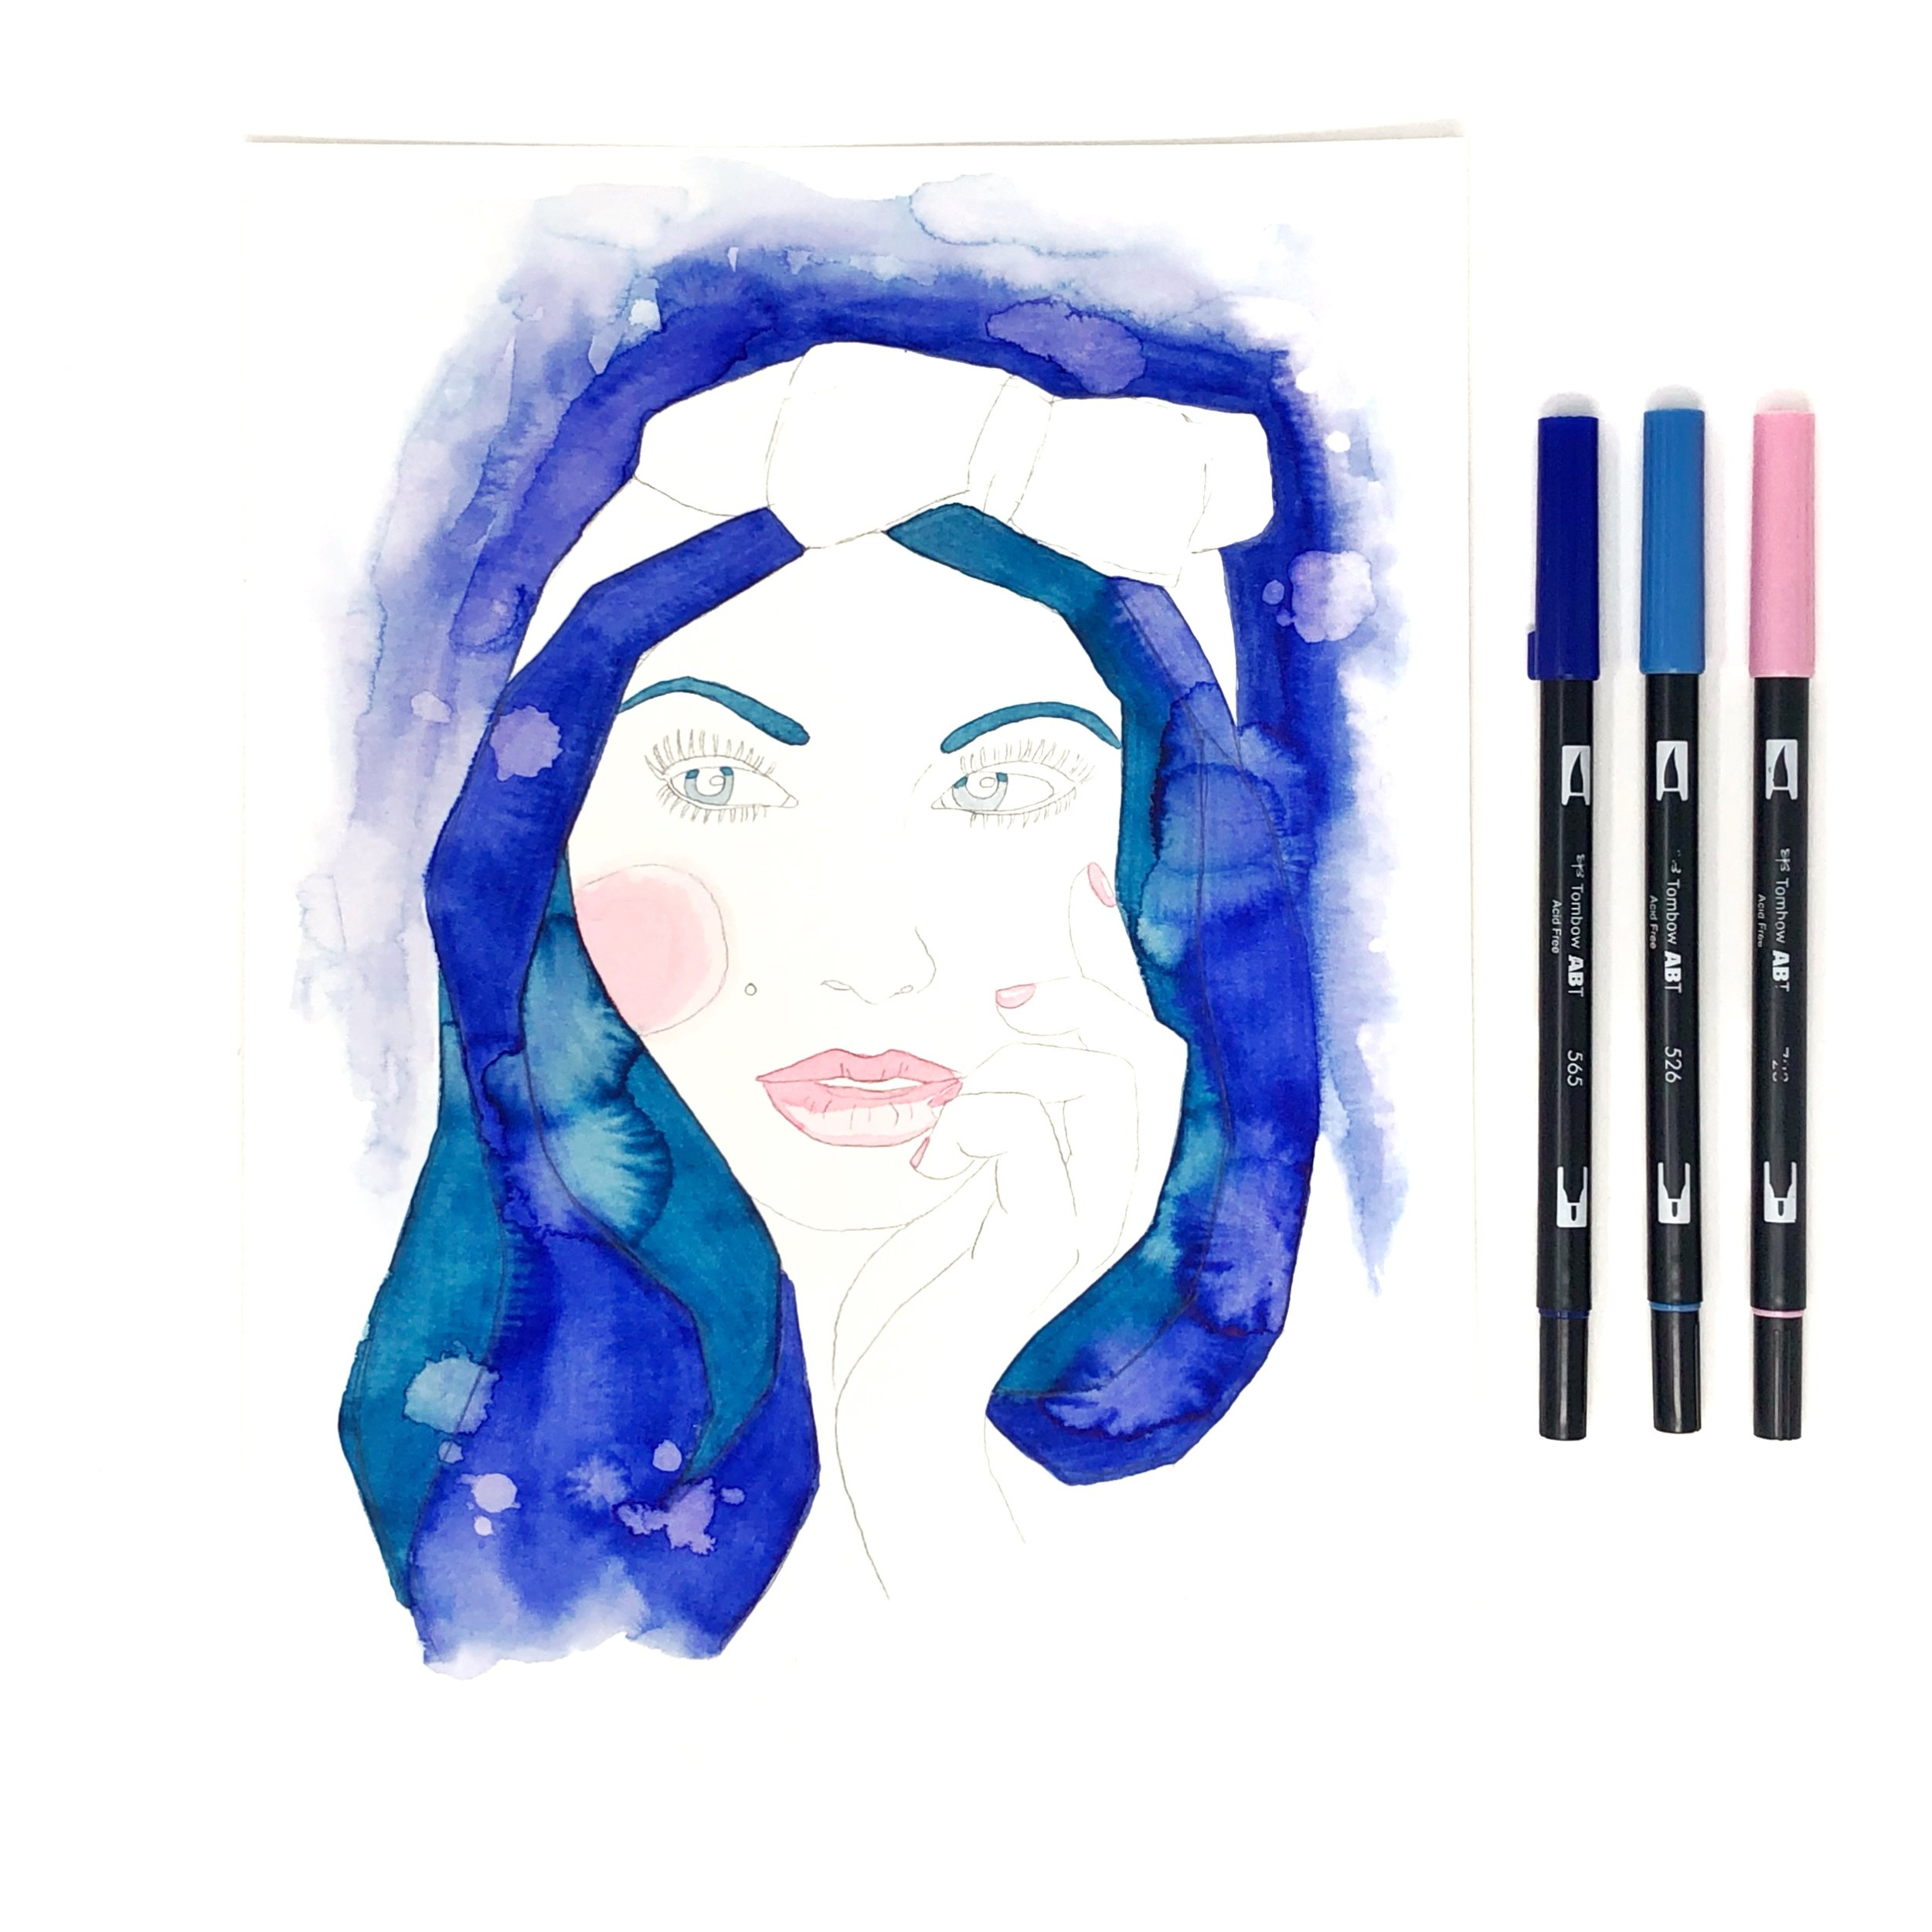 Re-doing a watercolor portrait from 2011 by Jessica Mack of BrownPaperBunny